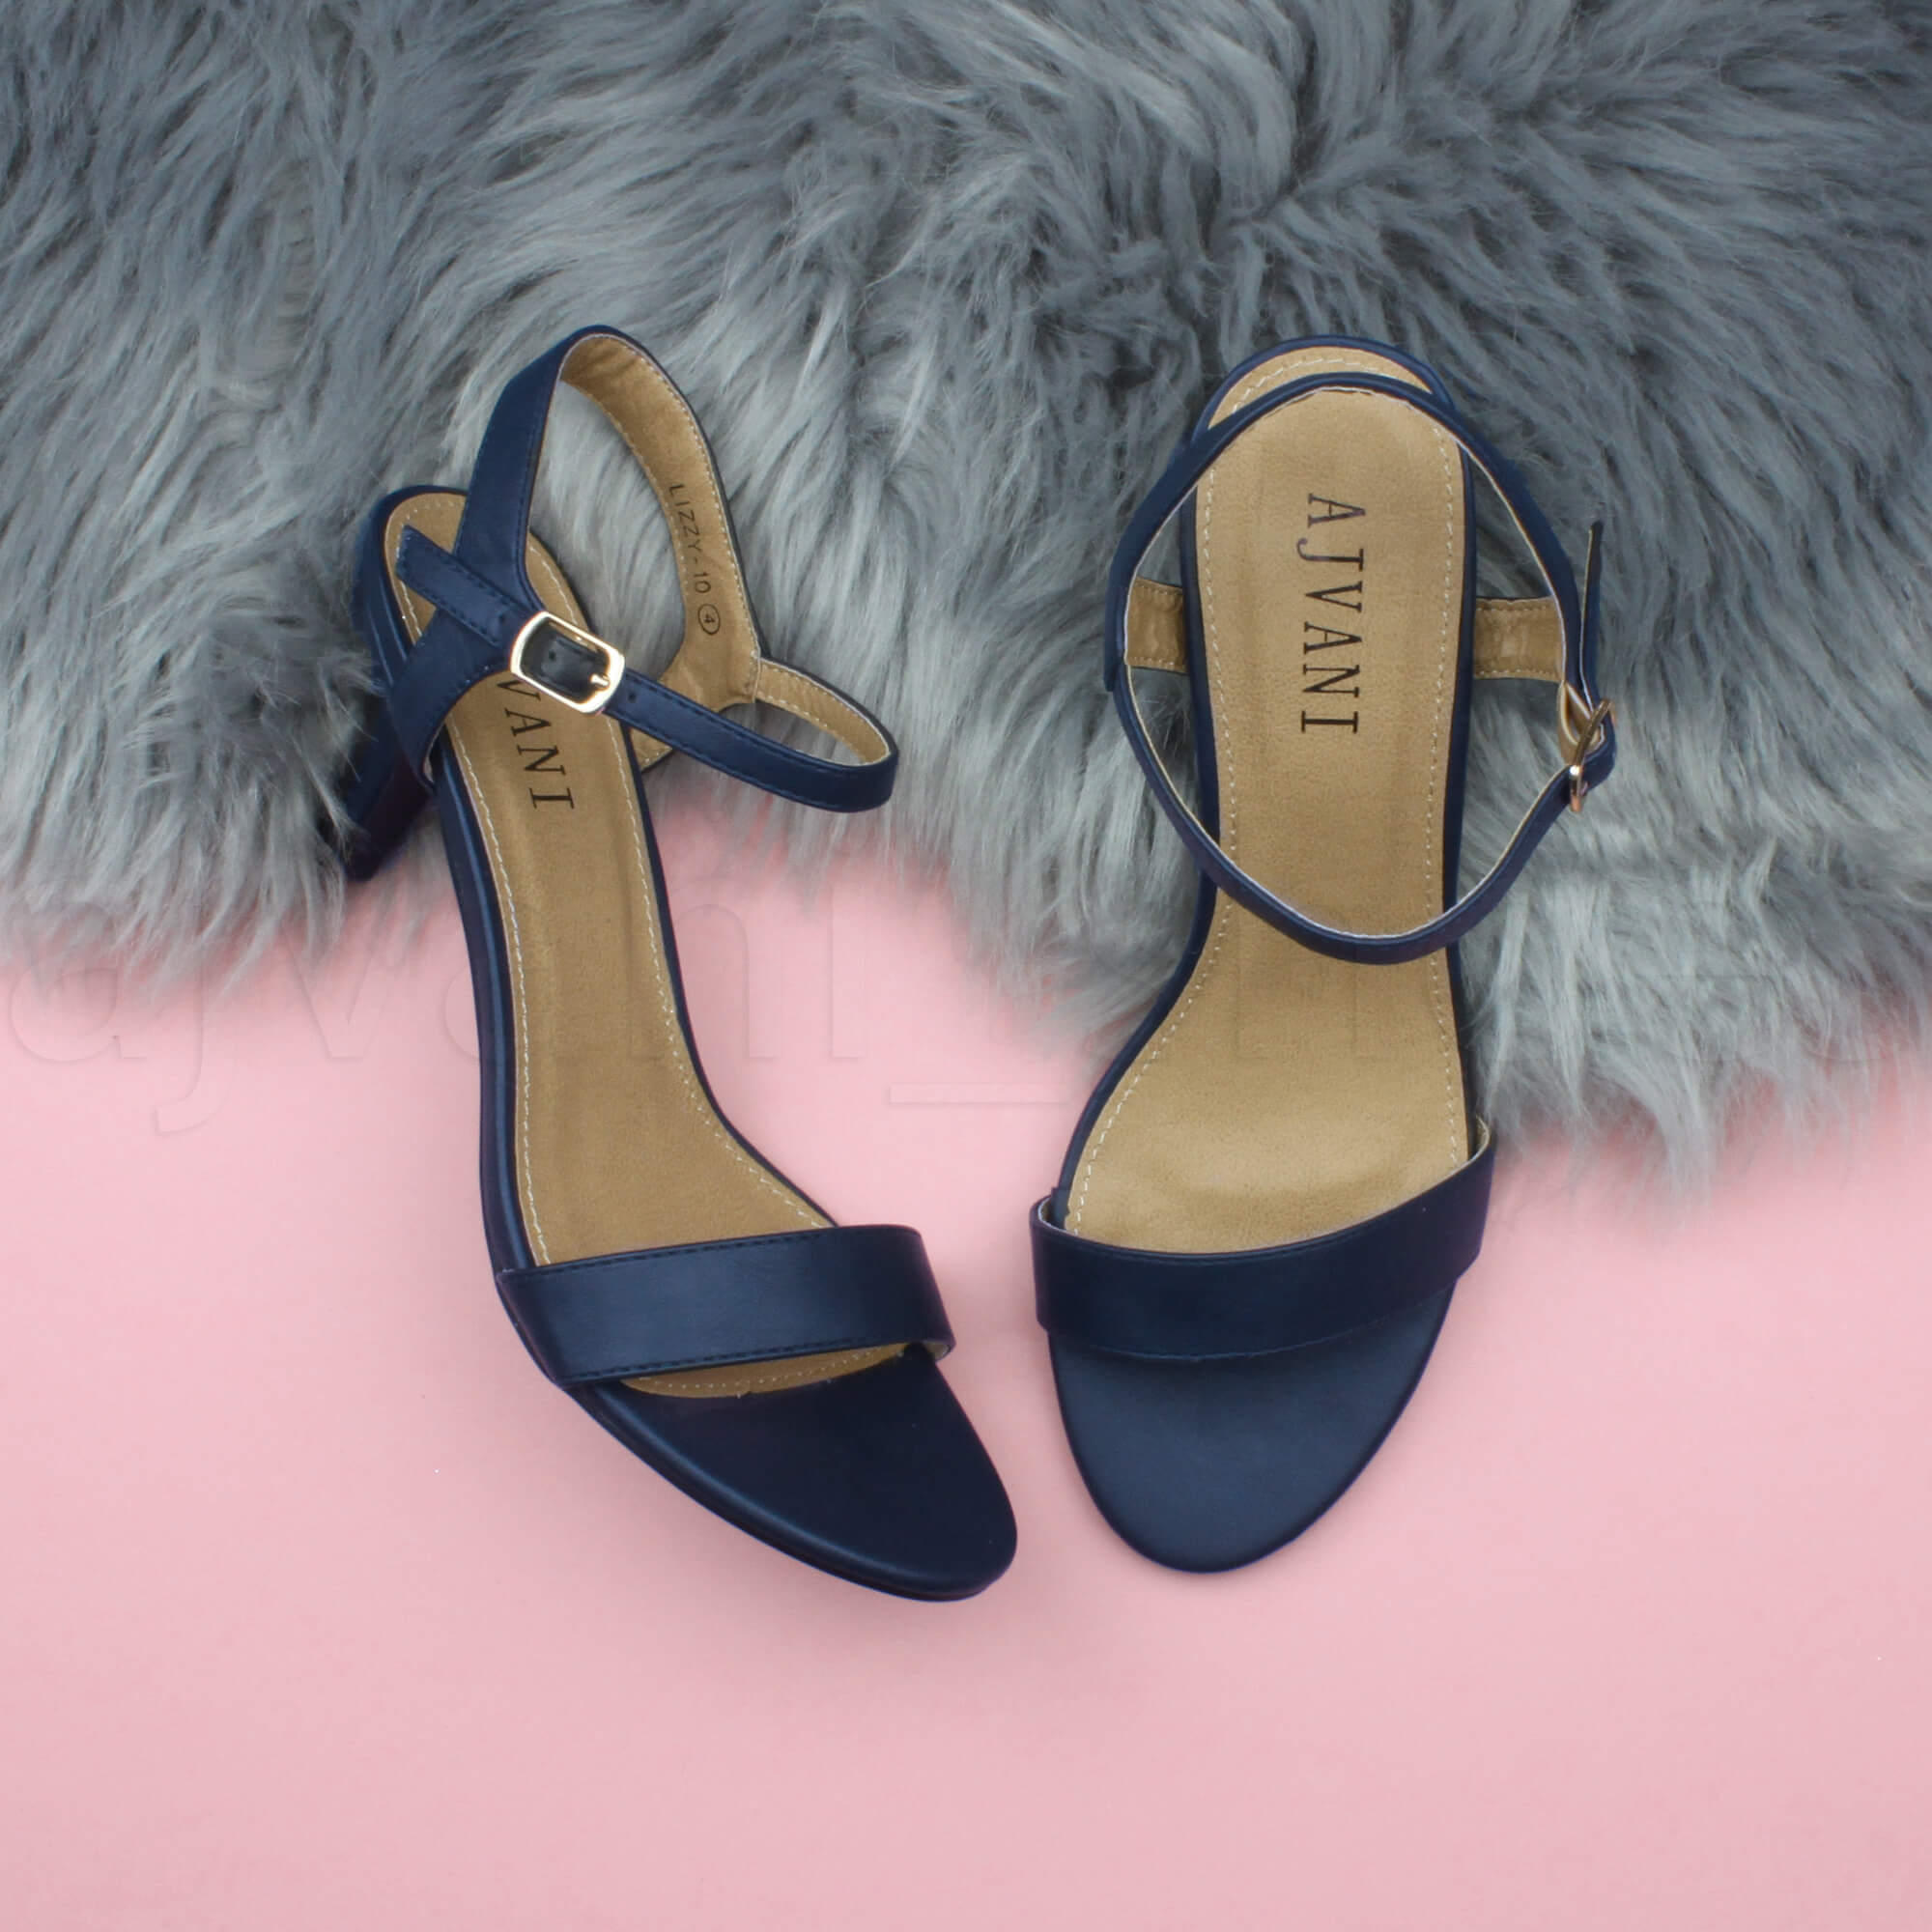 WOMENS-LADIES-HIGH-HEEL-BUCKLE-STRAPPY-BASIC-BARELY-THERE-SANDALS-SHOES-SIZE thumbnail 68